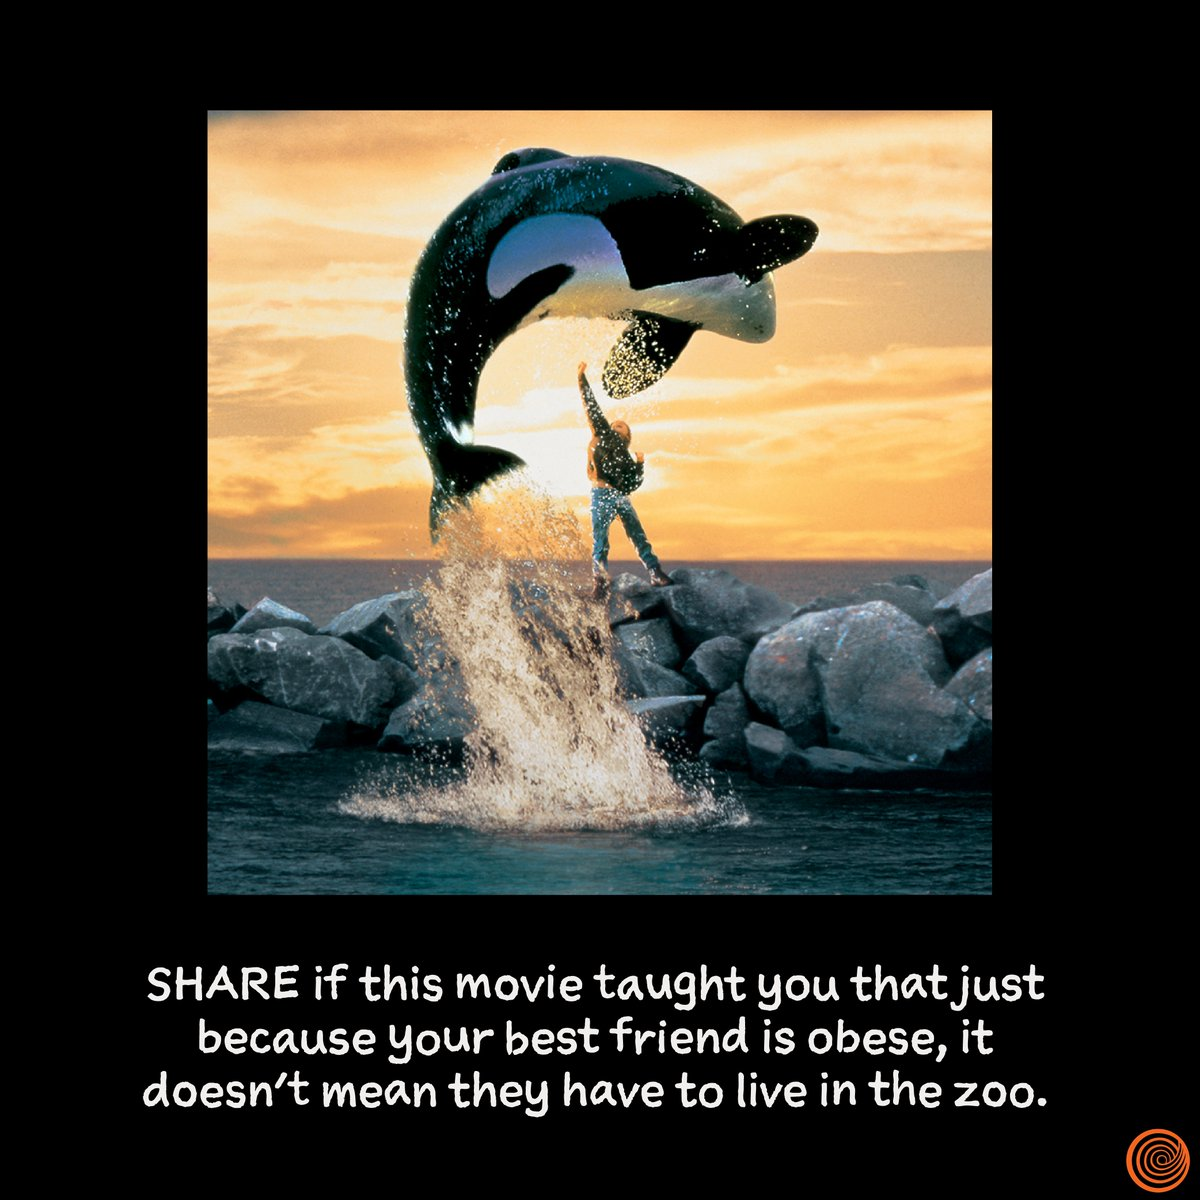 RT if this movie taught you the real meaning of friendship. <br>http://pic.twitter.com/H9ppAIkoqT